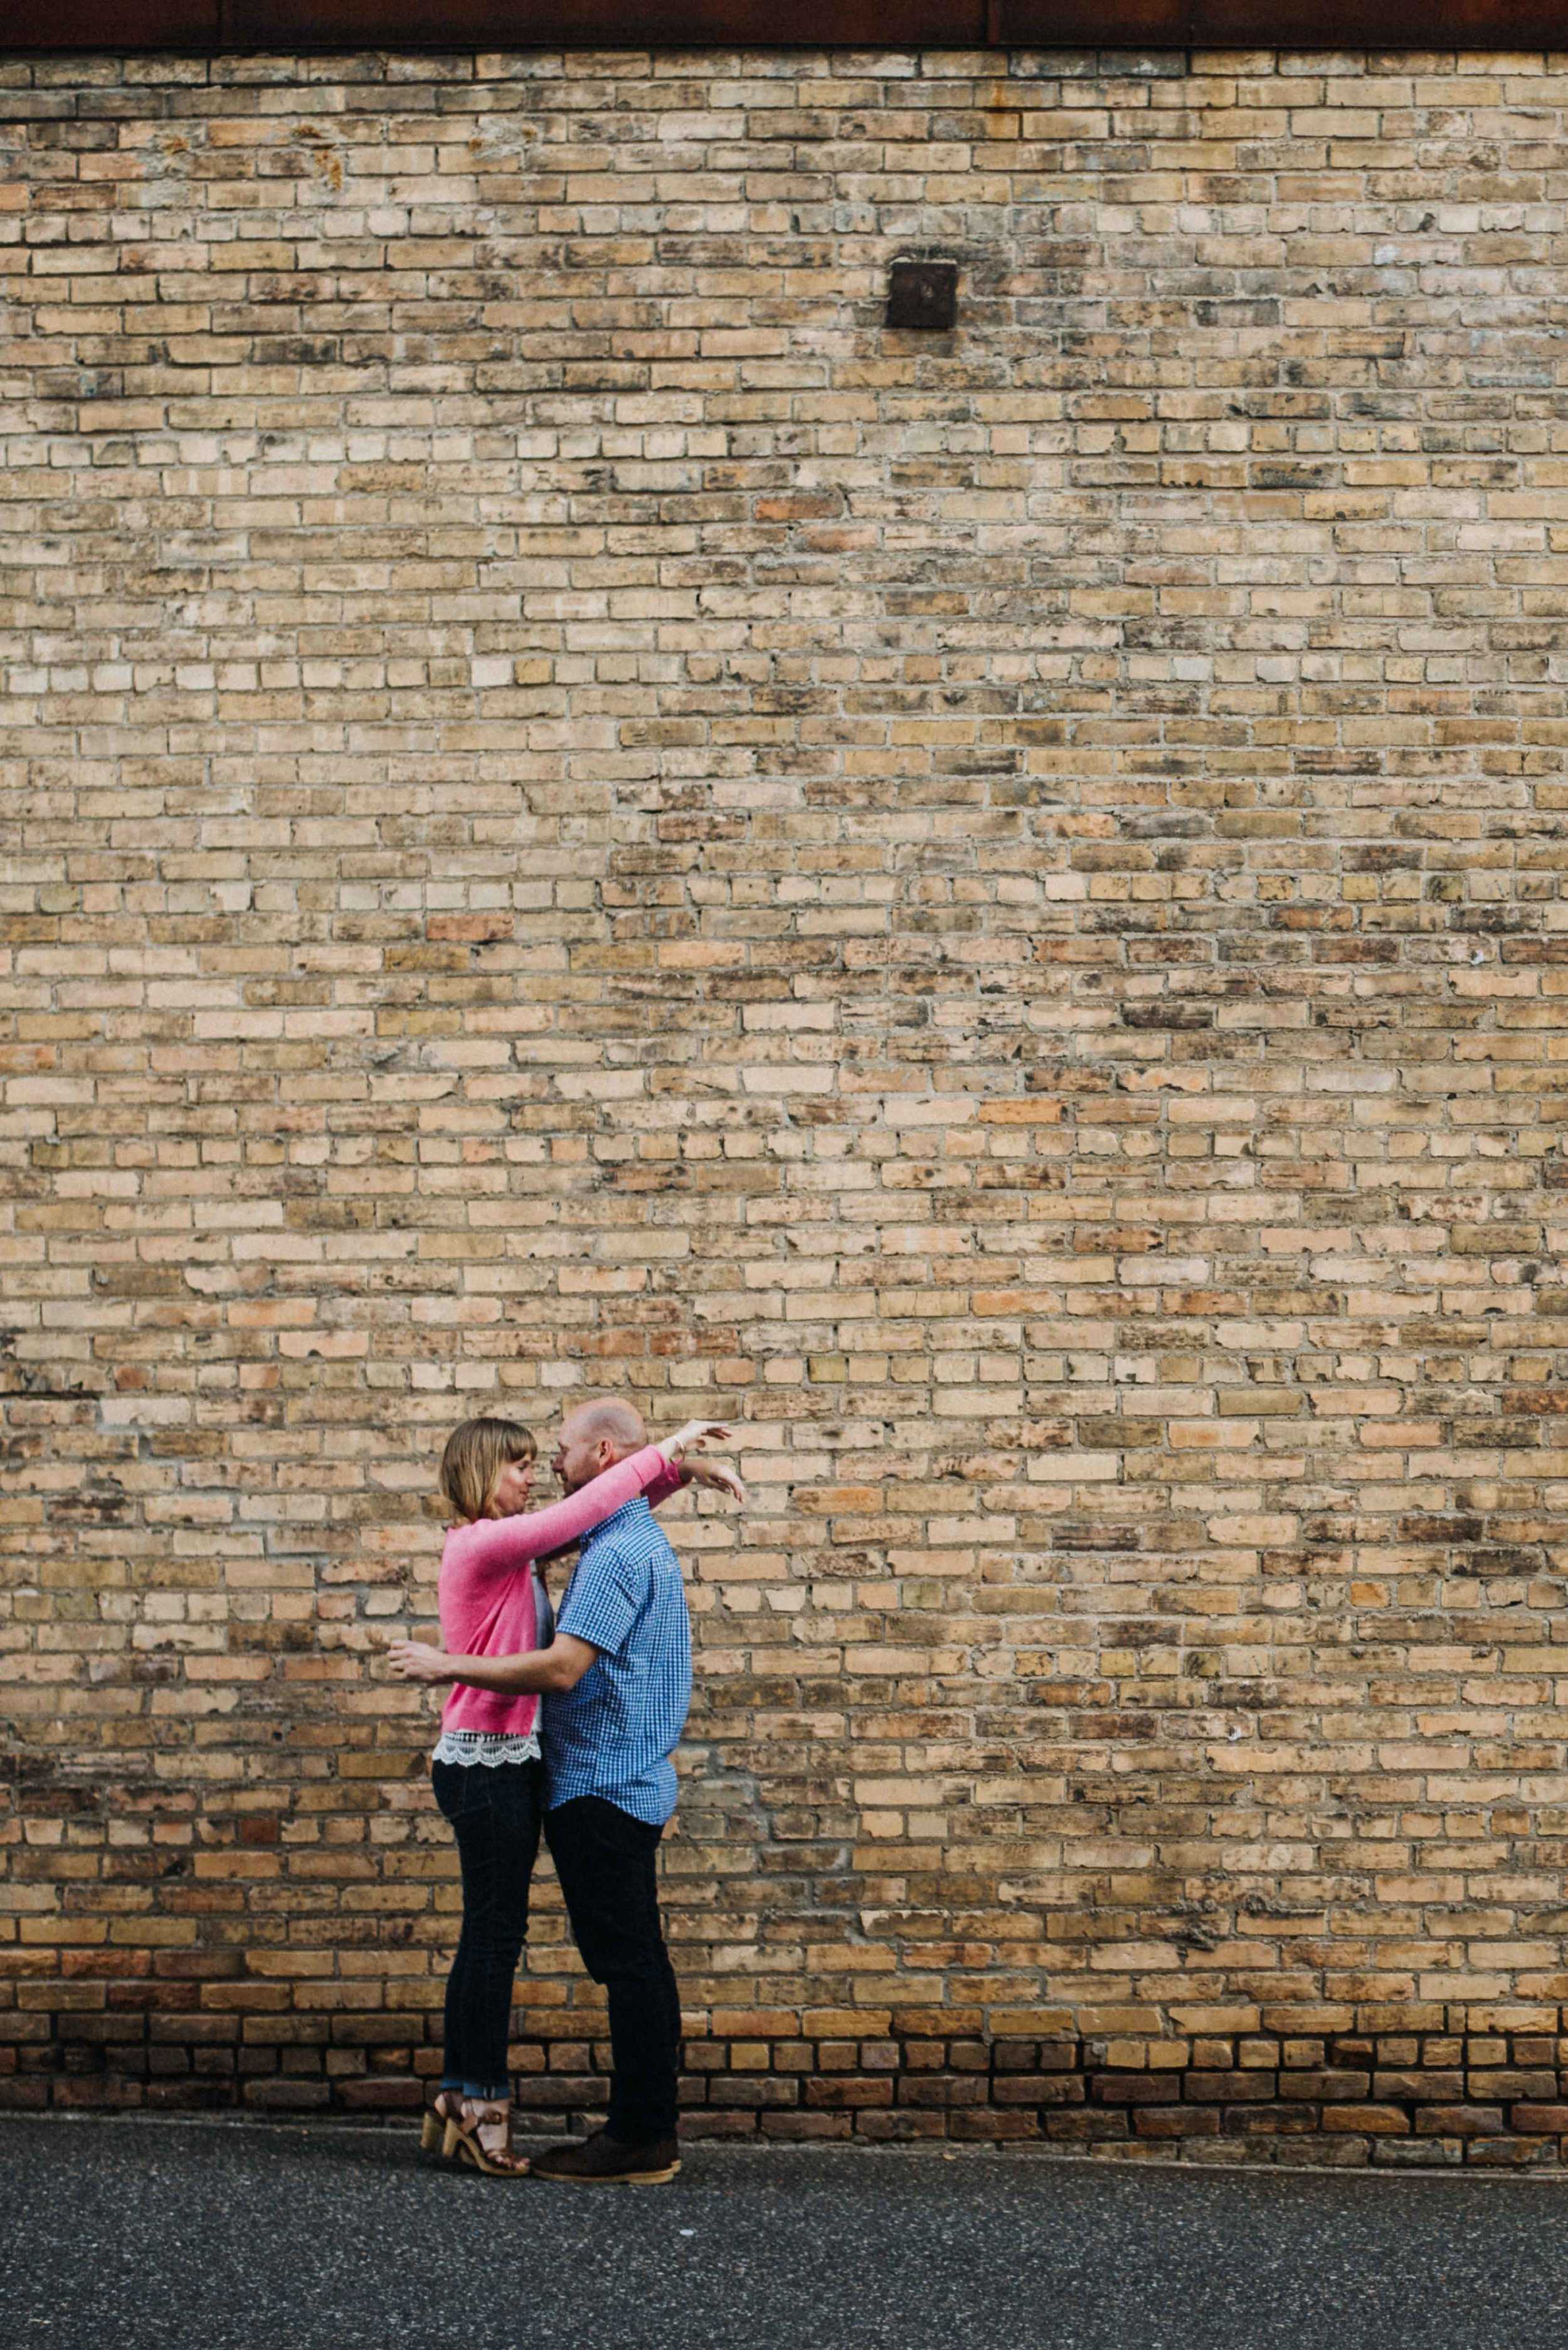 modist_brewing_minneapolis_minnesota_wedding_photography_engagement_session (7 of 32).JPG